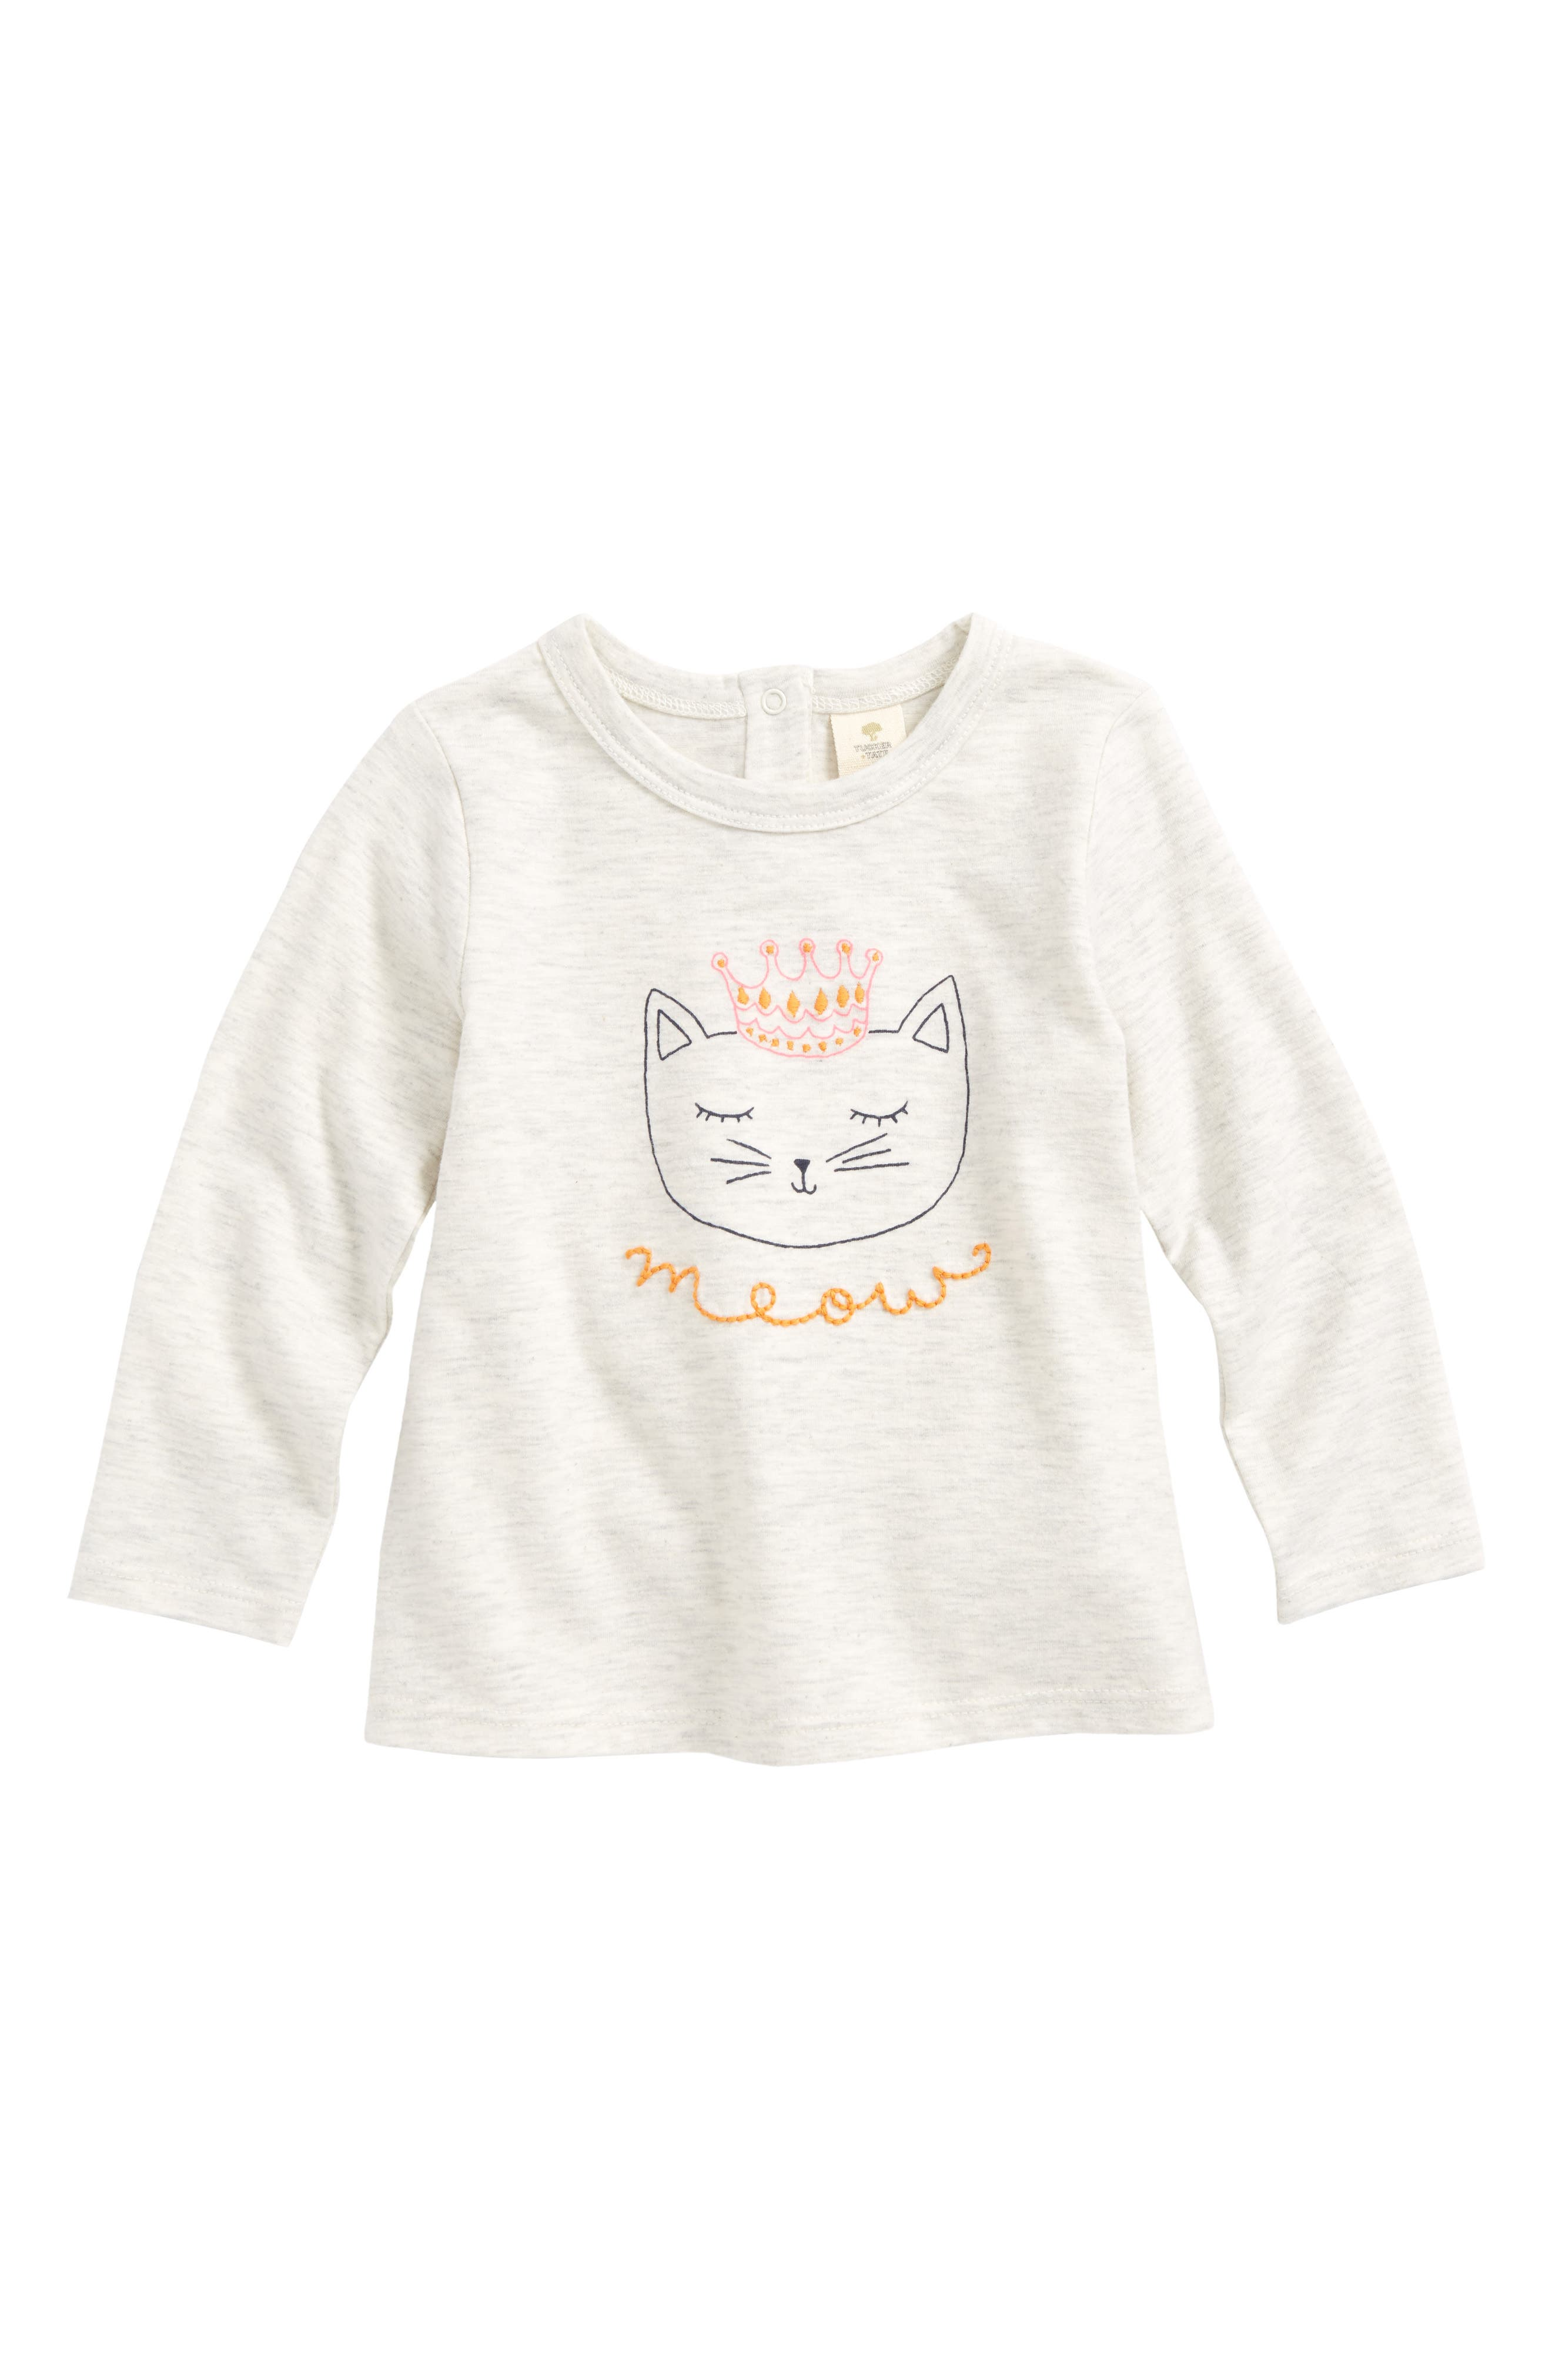 Embroidered Graphic Tee,                         Main,                         color, Ivory Egret Heather Crown Cat